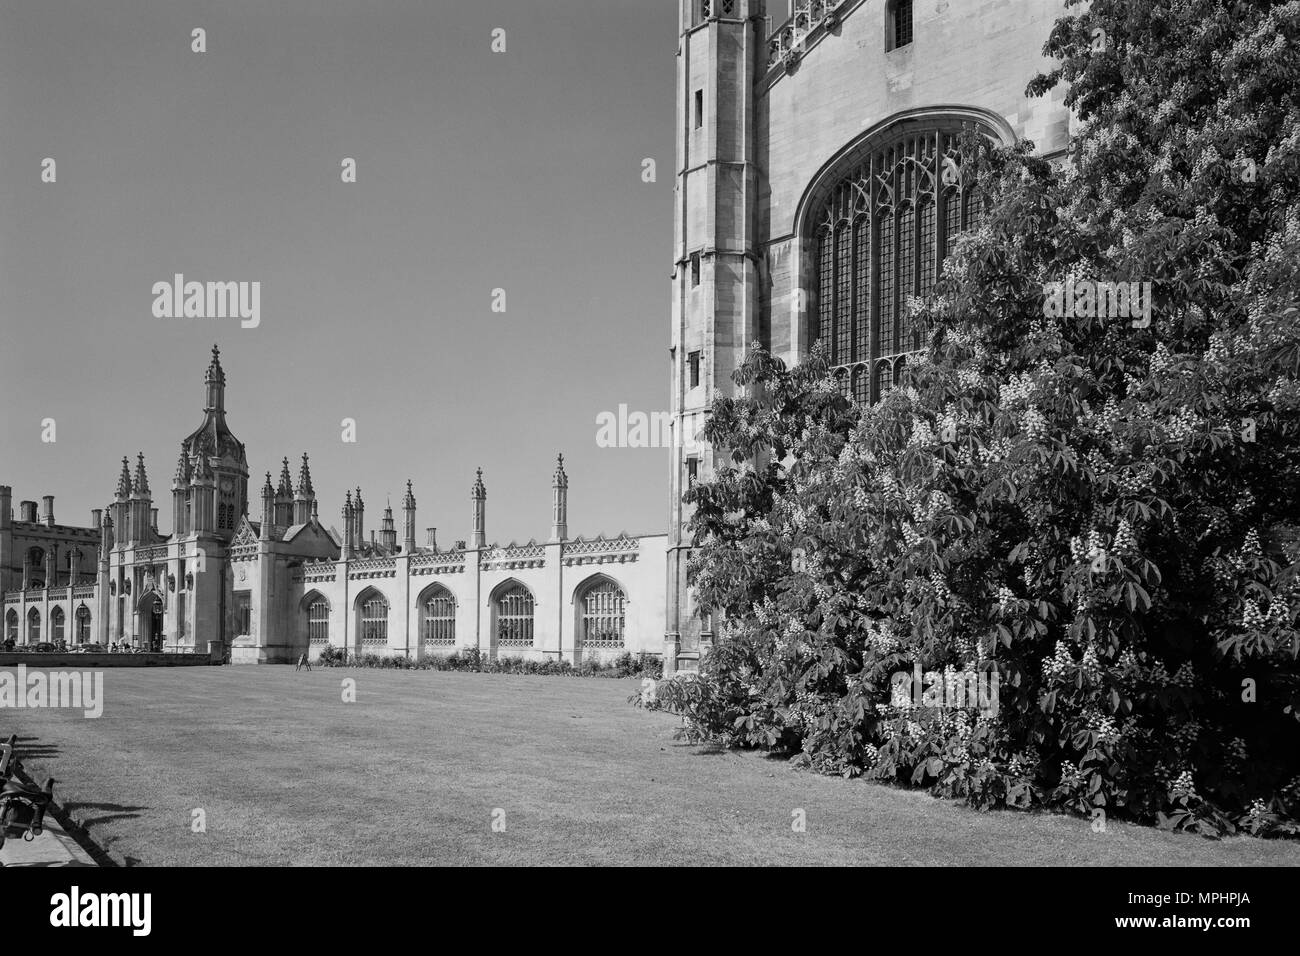 King's College Cambridge on King's Parade - Stock Image